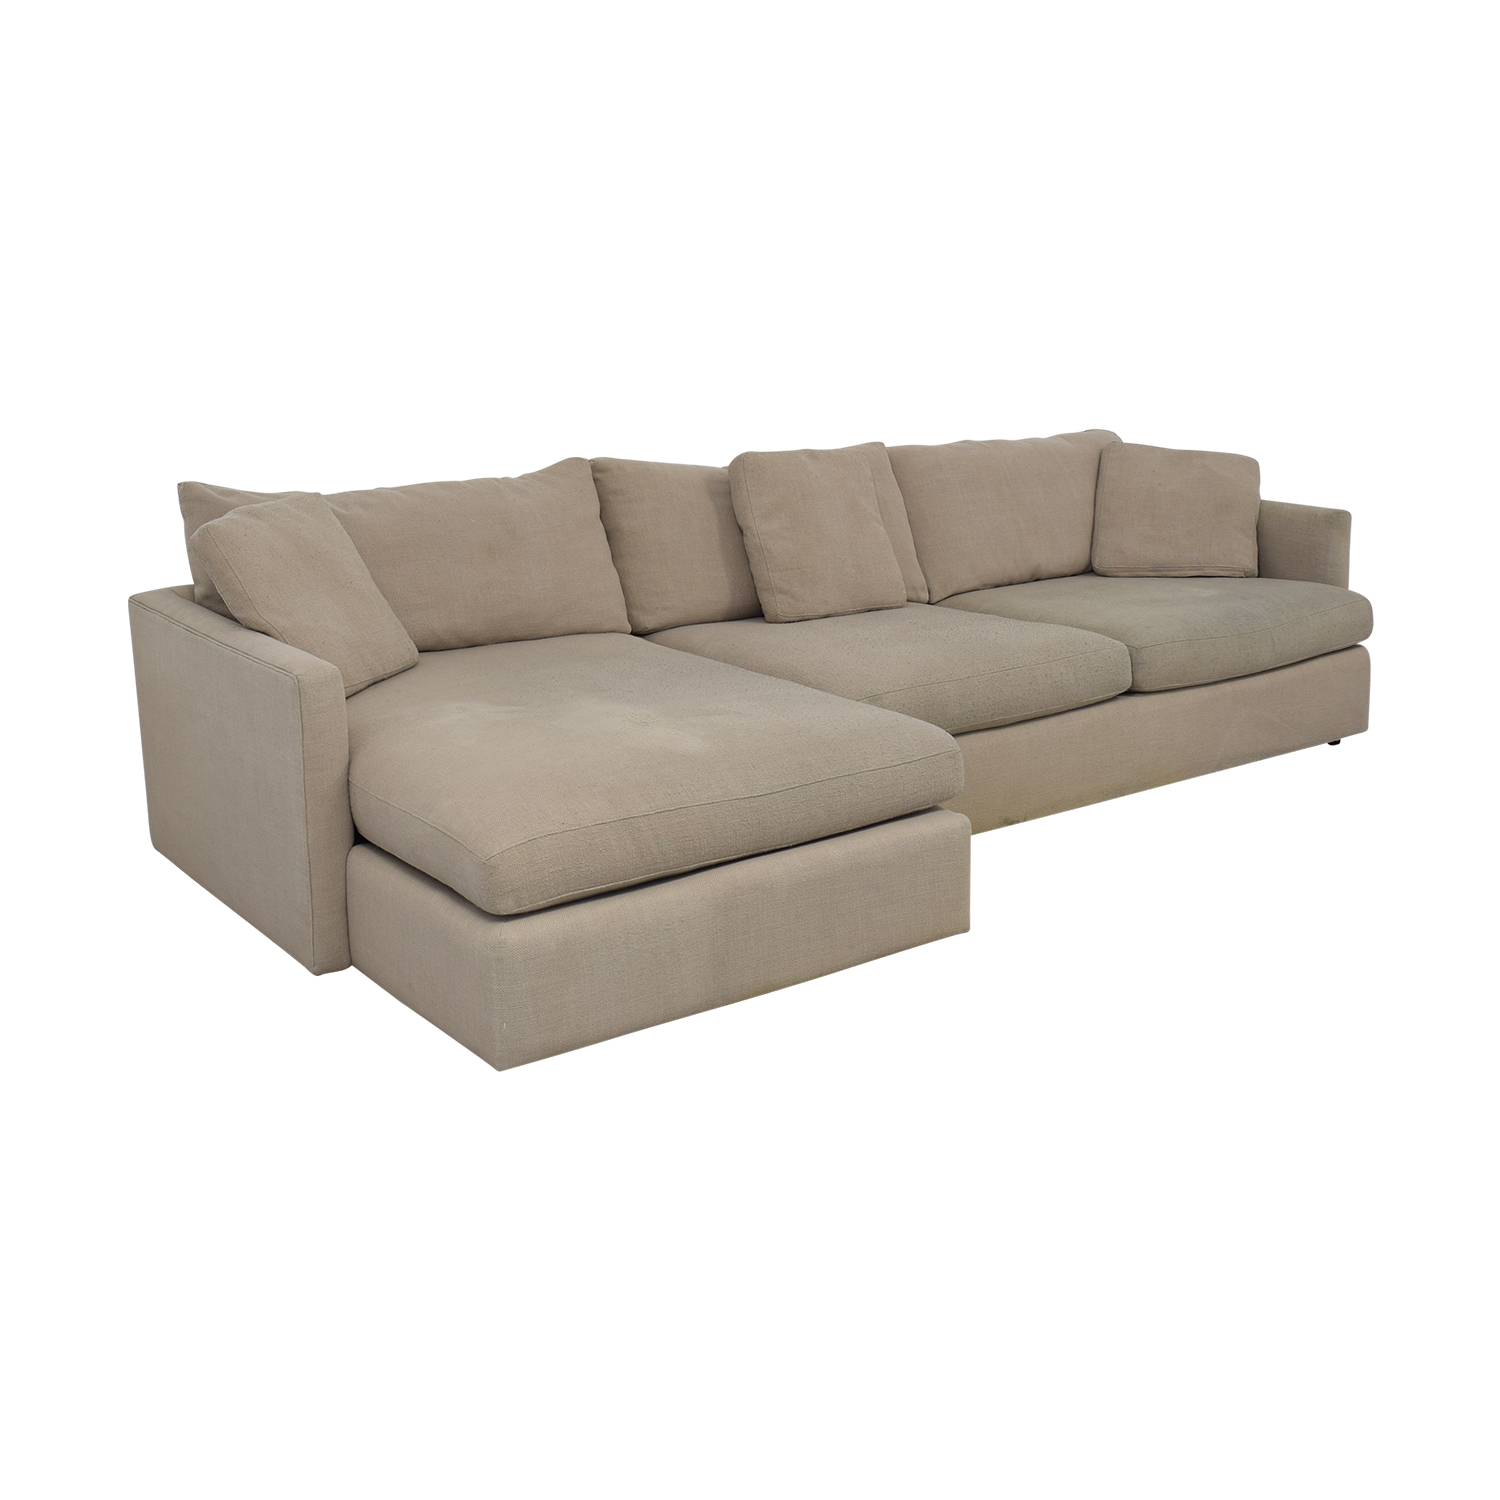 Crate & Barrel Crate & Barrel Axis II Chaise Sectional Sofa Sectionals